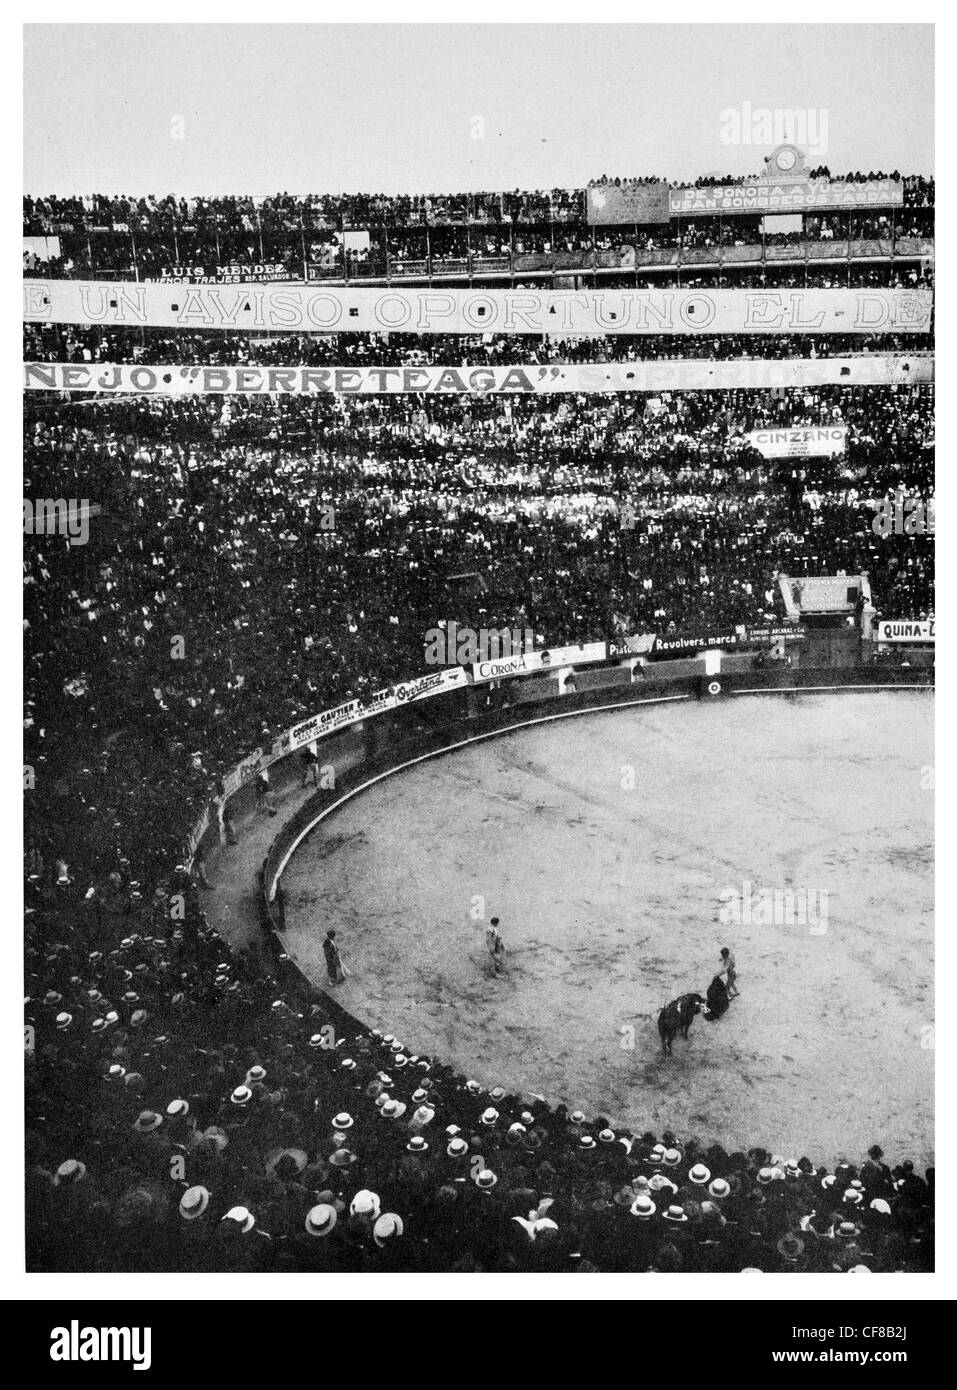 Bull ring Mexico City Matadors 1927 - Stock Image